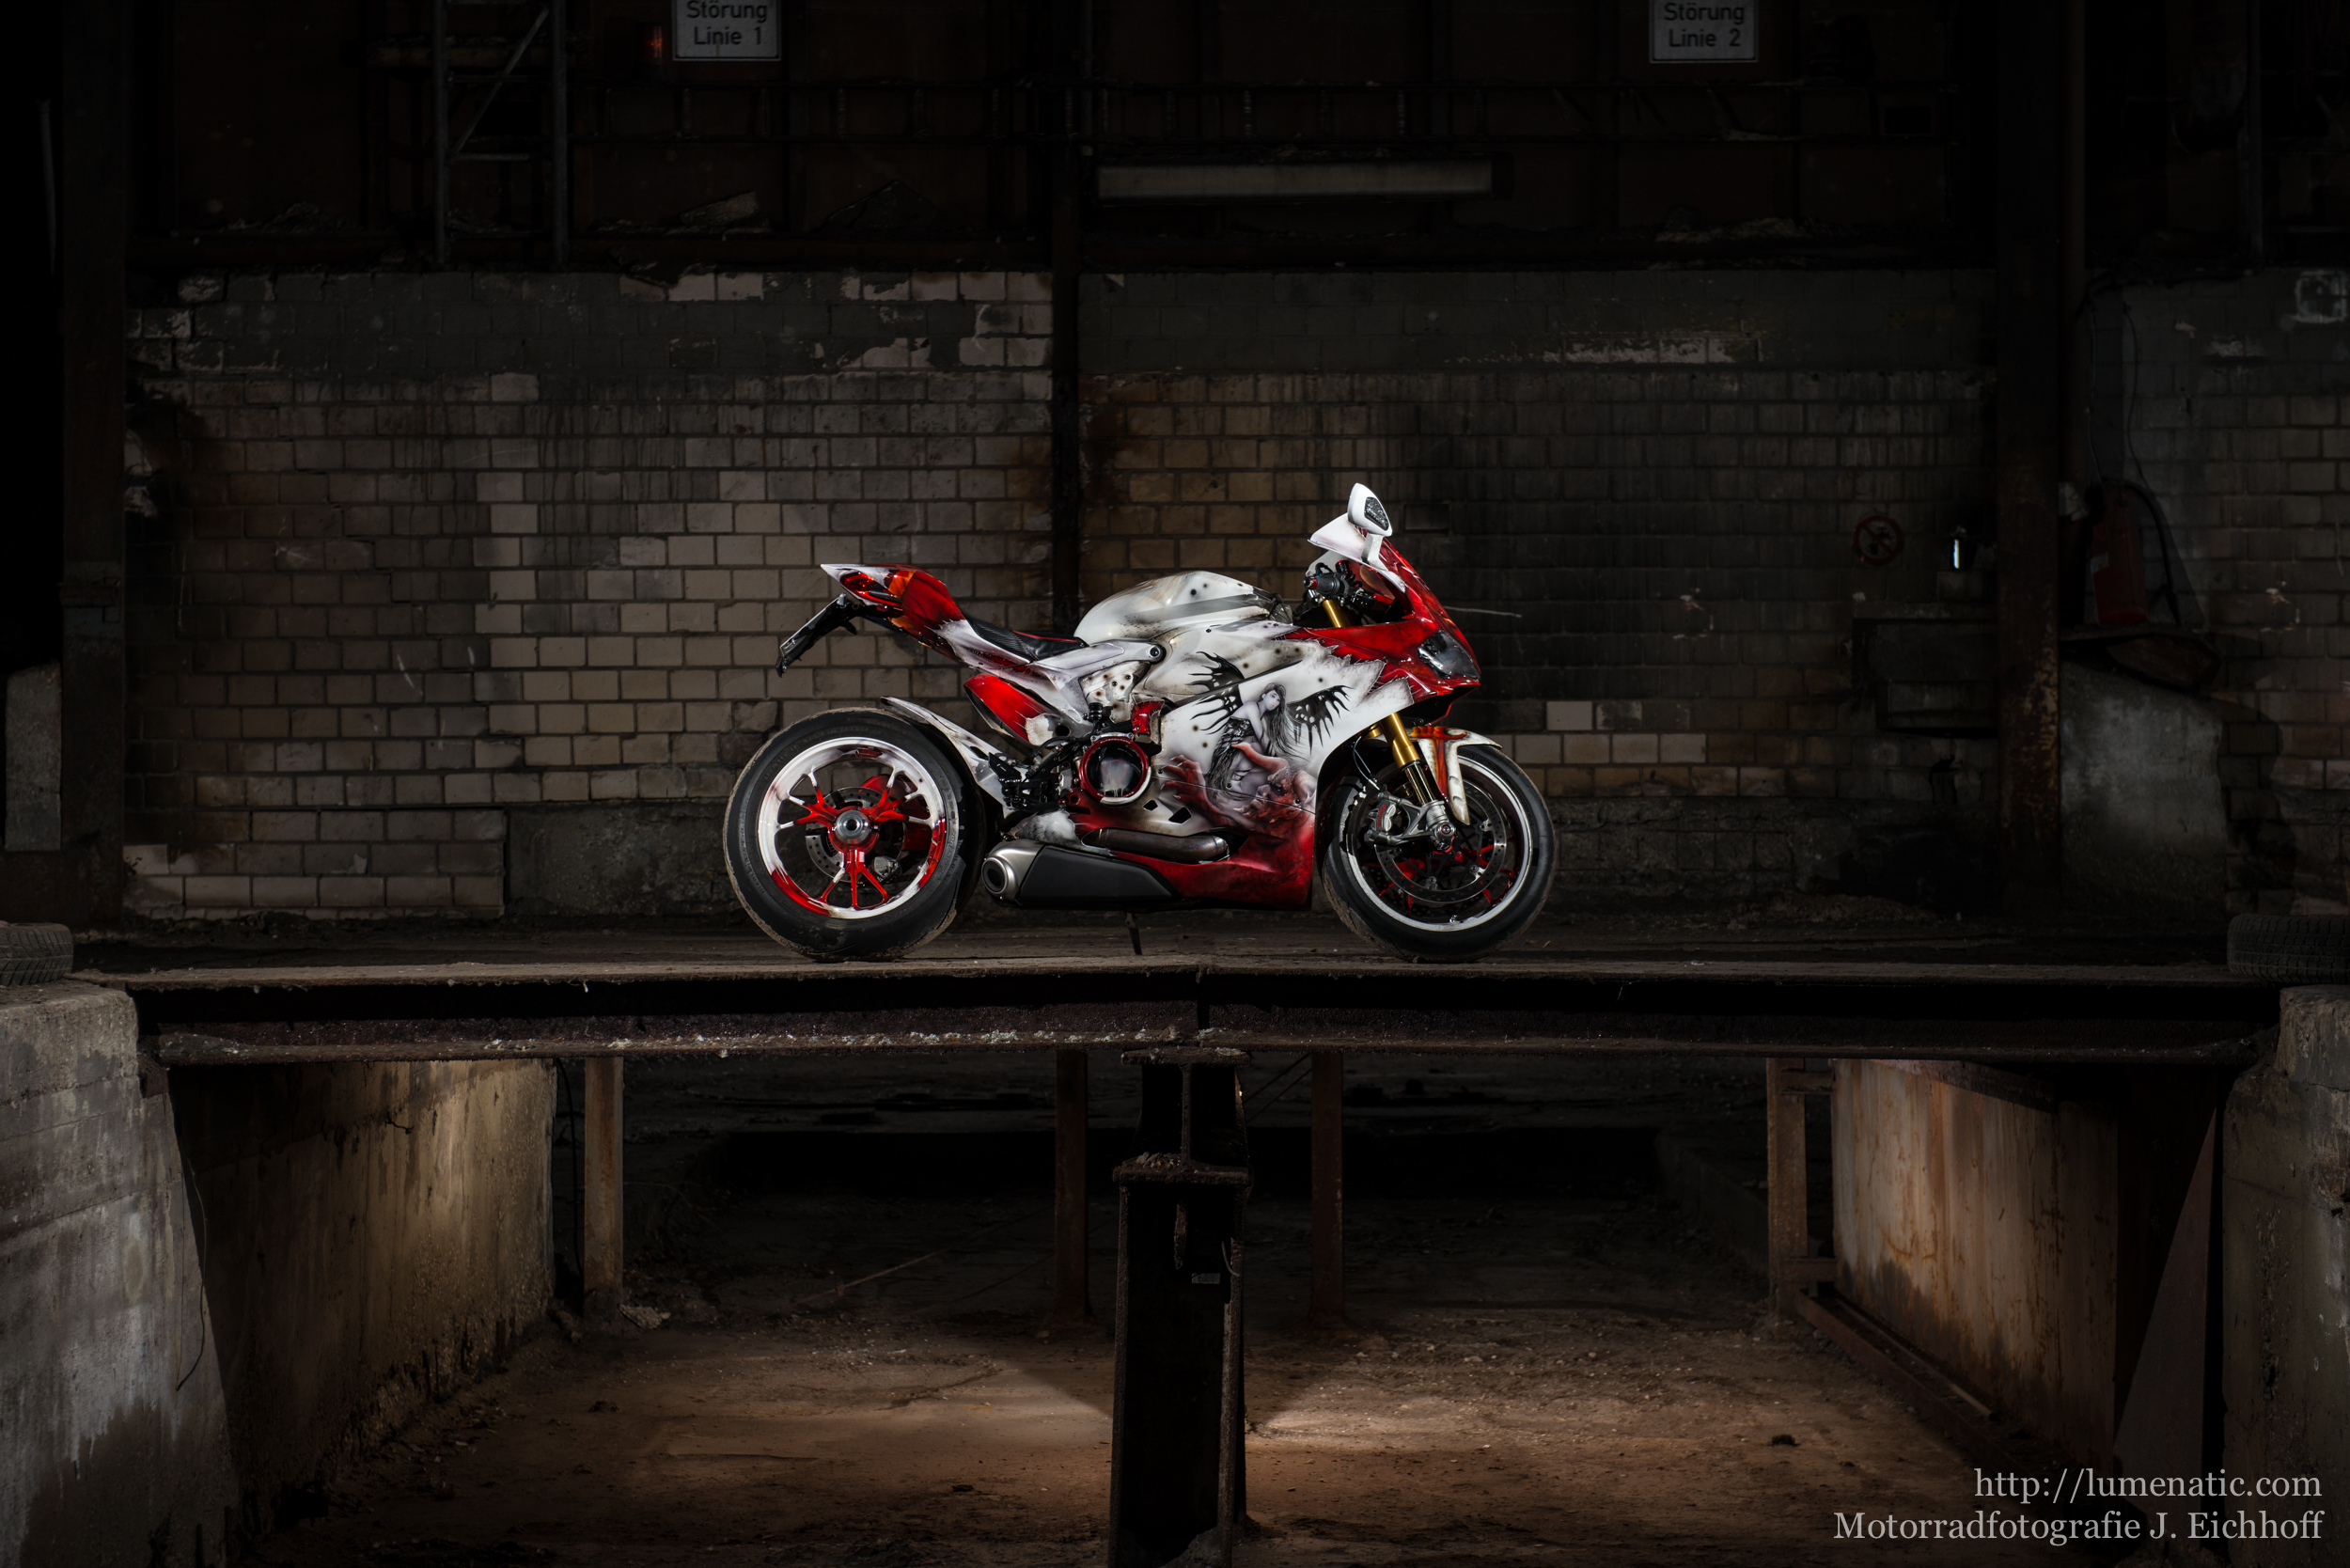 Alte Gießerei, Teil 2: Ducati Panigale 1299S